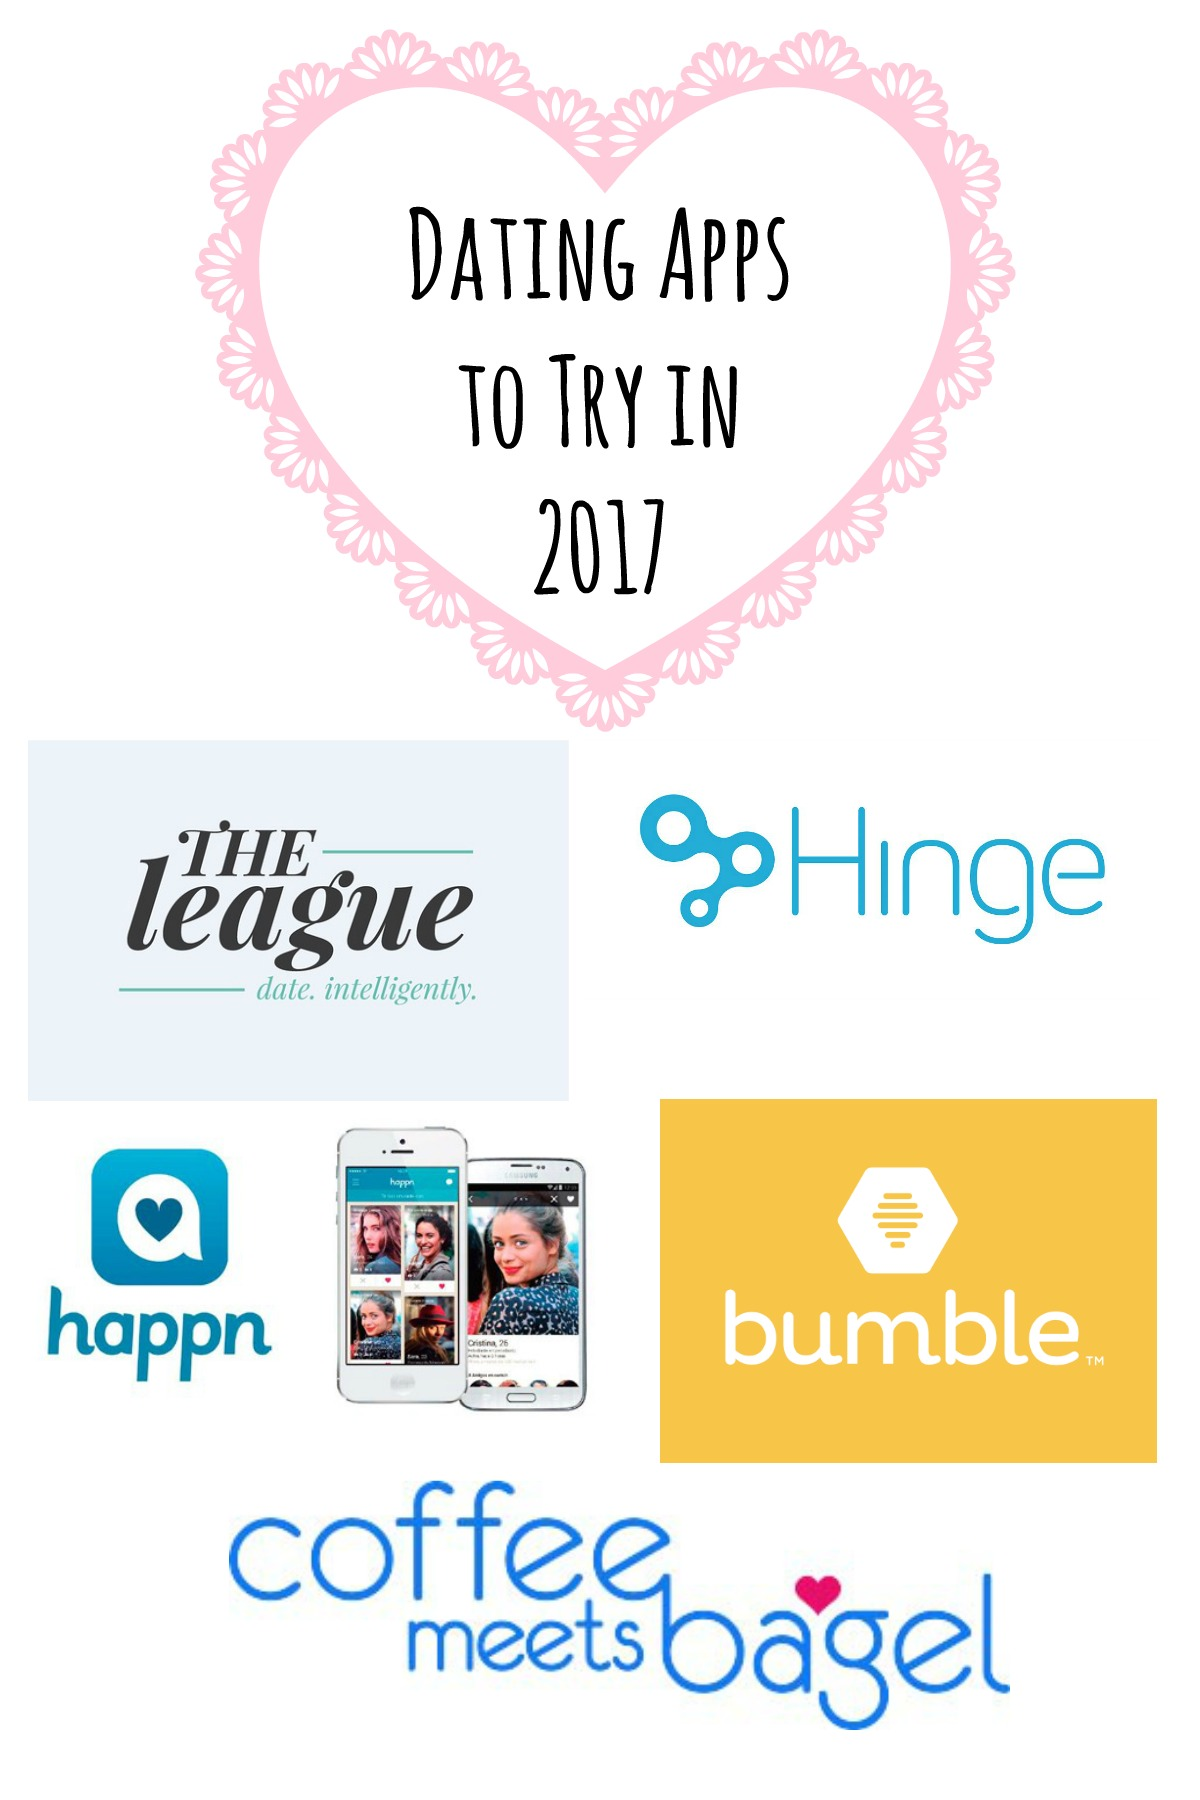 Dating Apps to Try in 2017